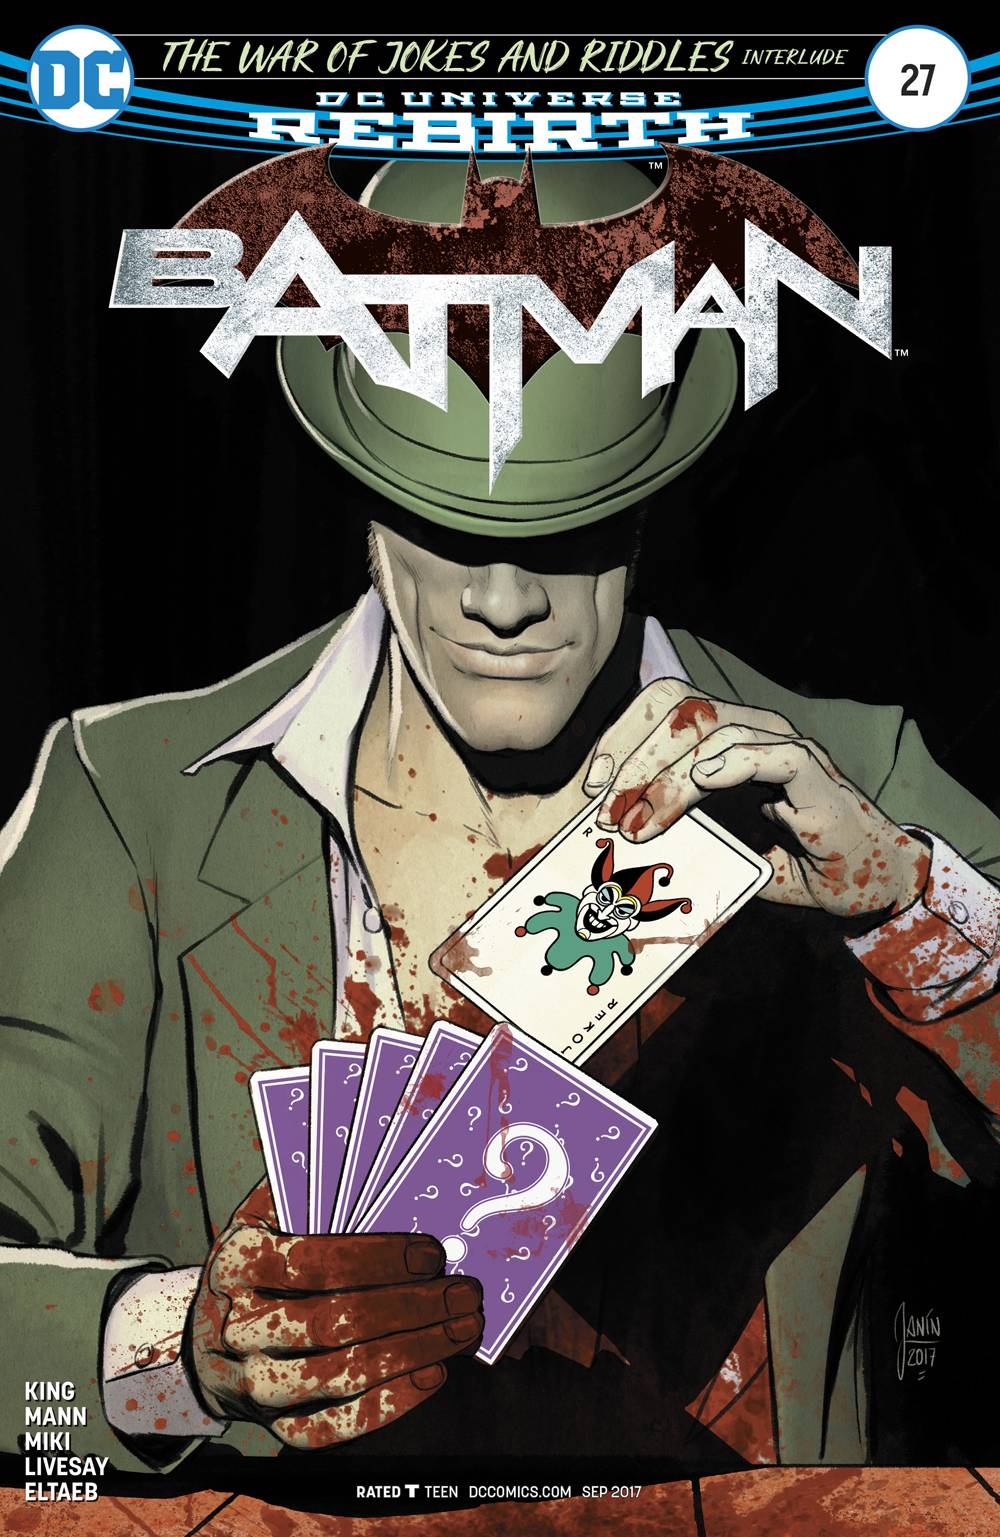 BATMAN #27 - DC COMICSWritten by Tom KingArt by Davide Gianfelice